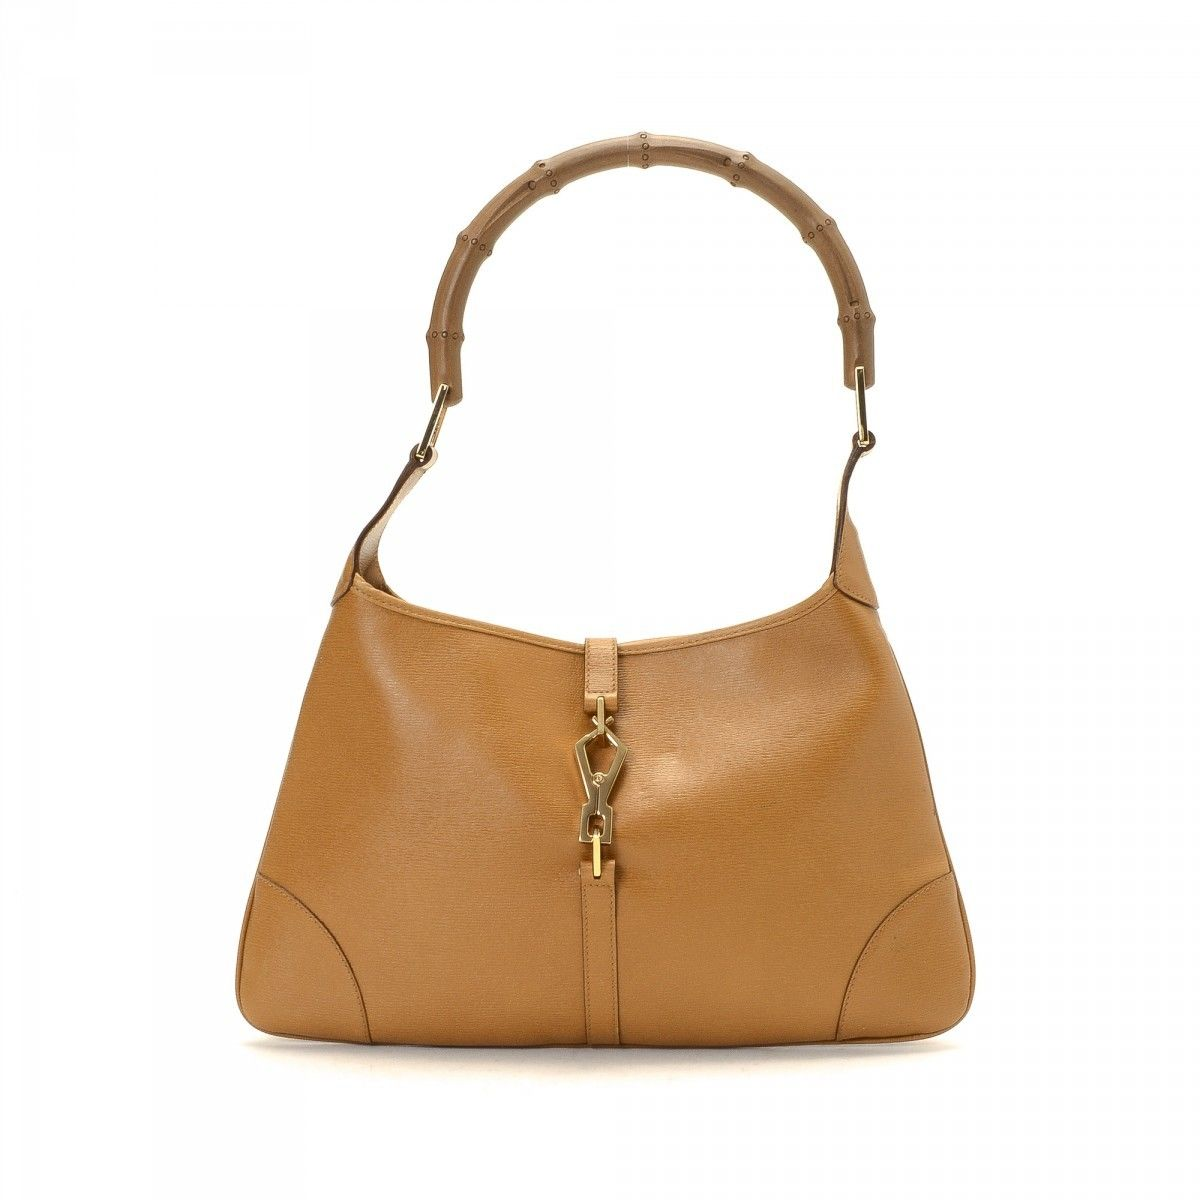 Gucci Pre-owned - Jackie leather bag WUylt4O